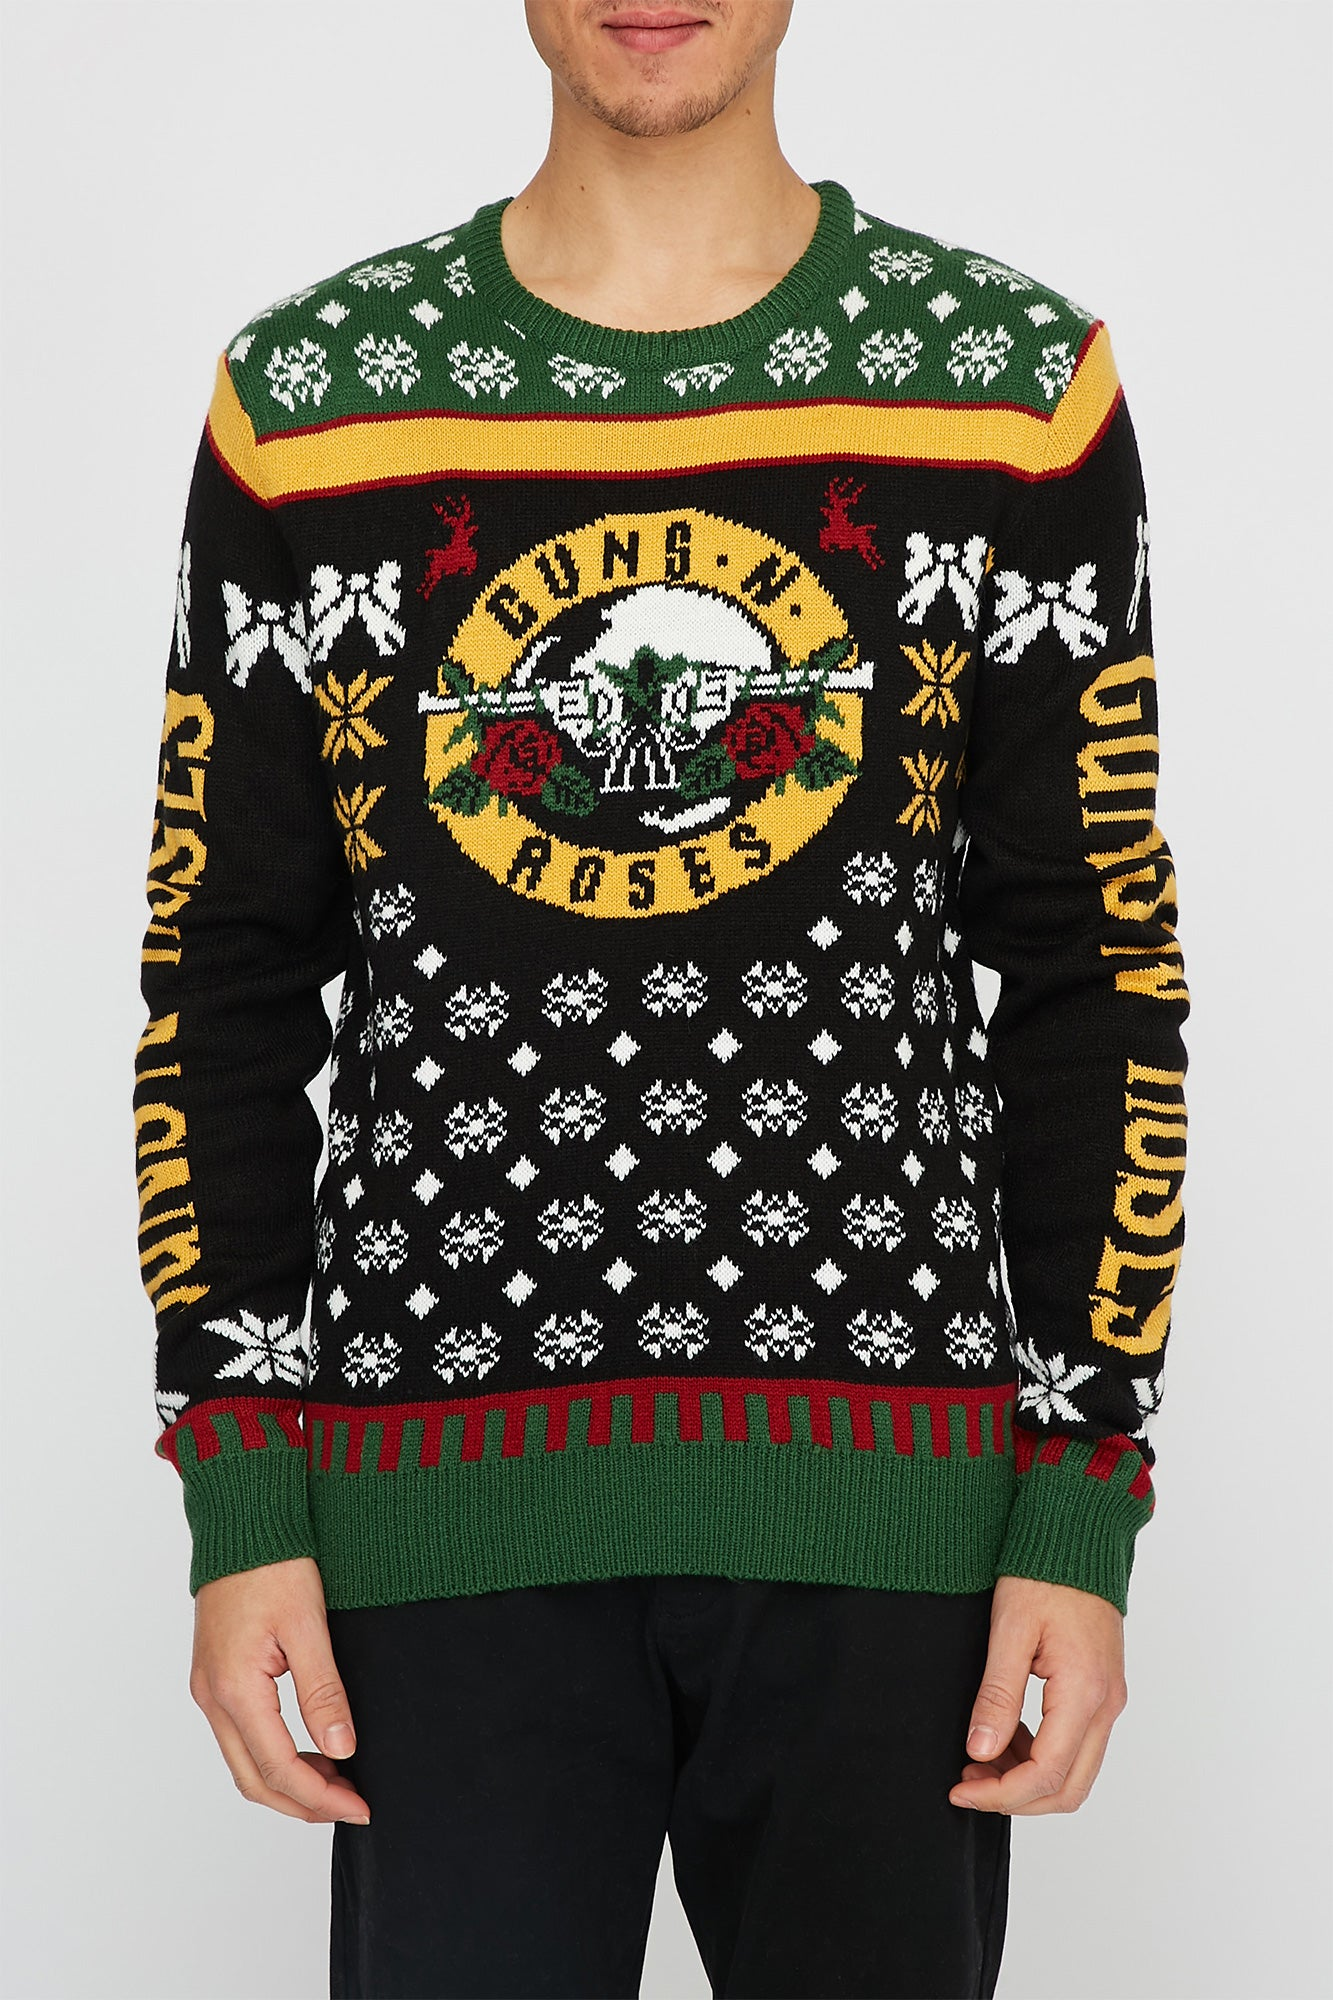 Band Ugly Christmas Sweaters.Mens Guns N Roses Ugly Christmas Sweater